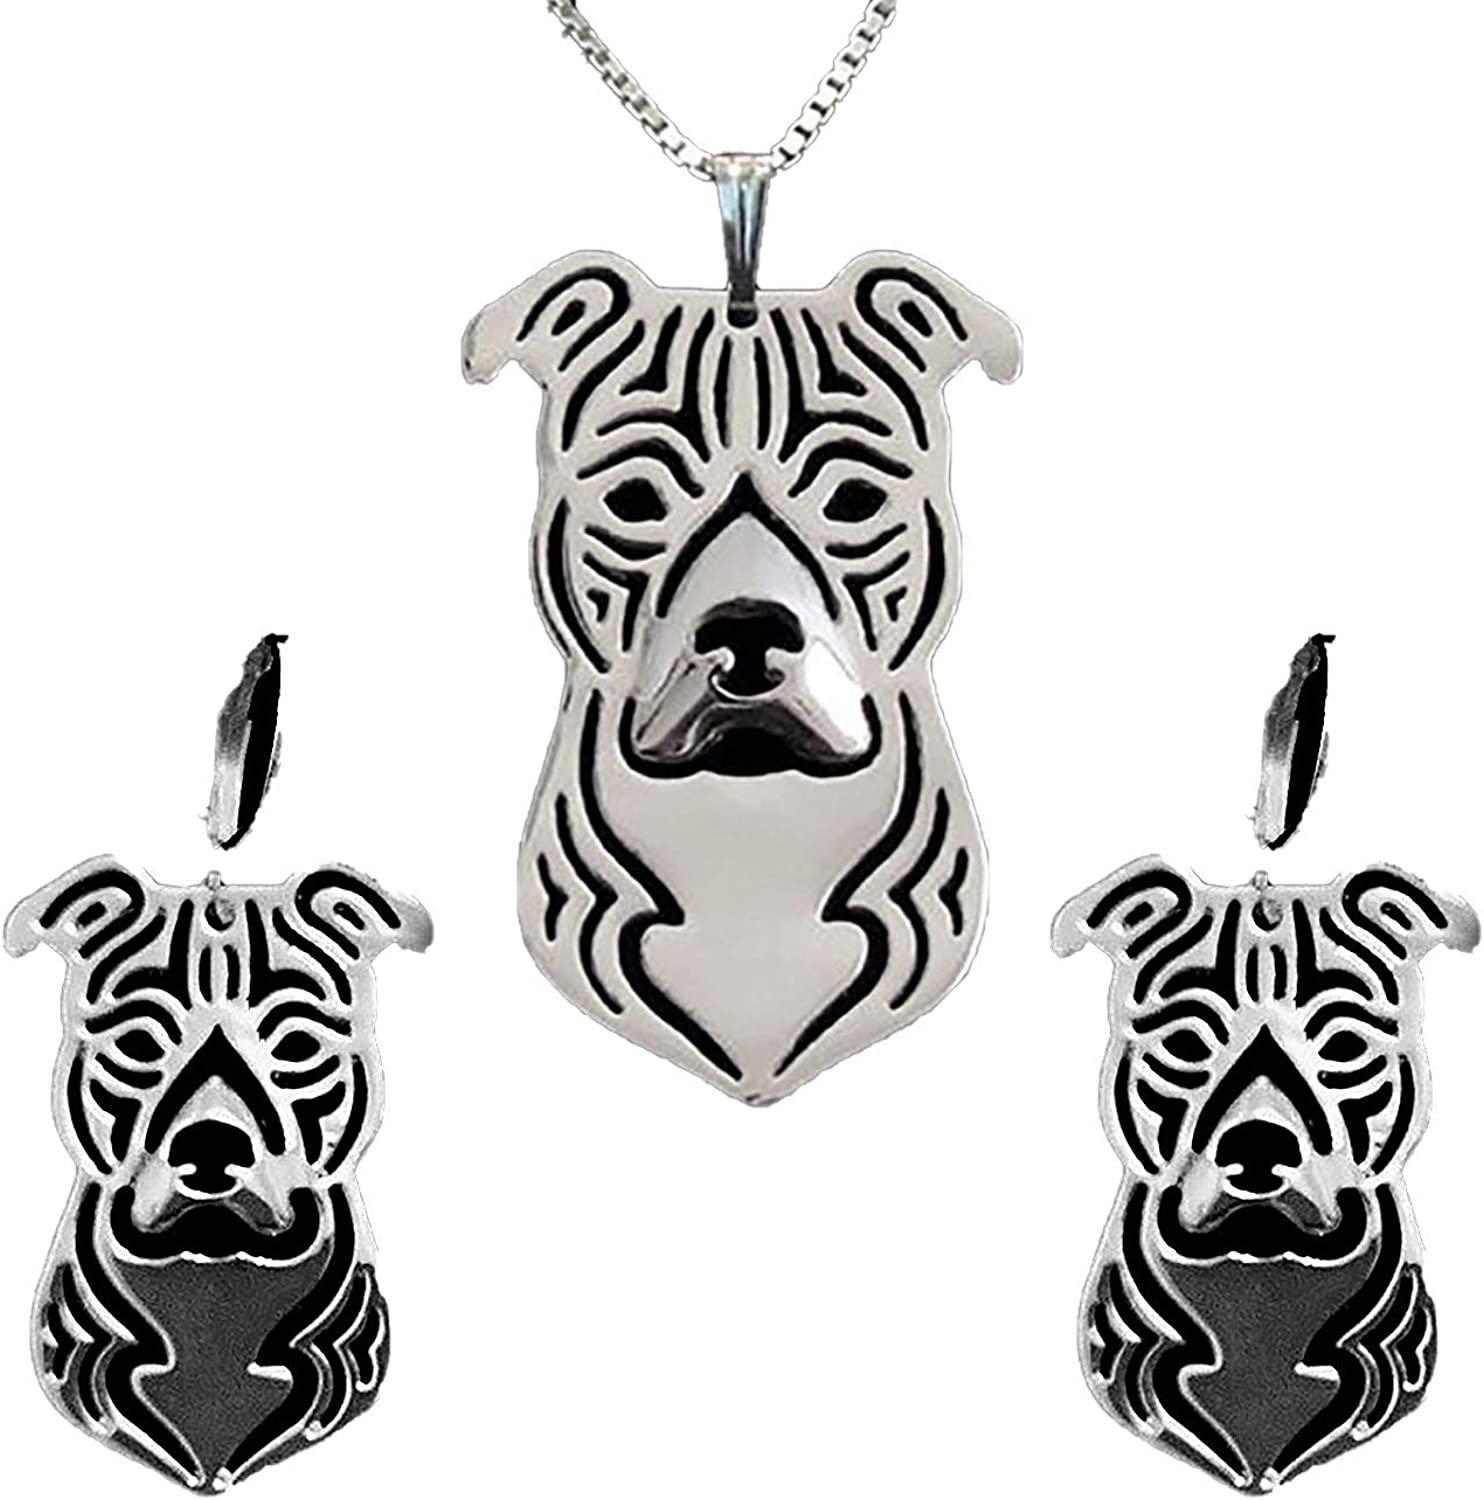 high qauality Art Dog American Staffordshire Terrier2 silver covered necklace